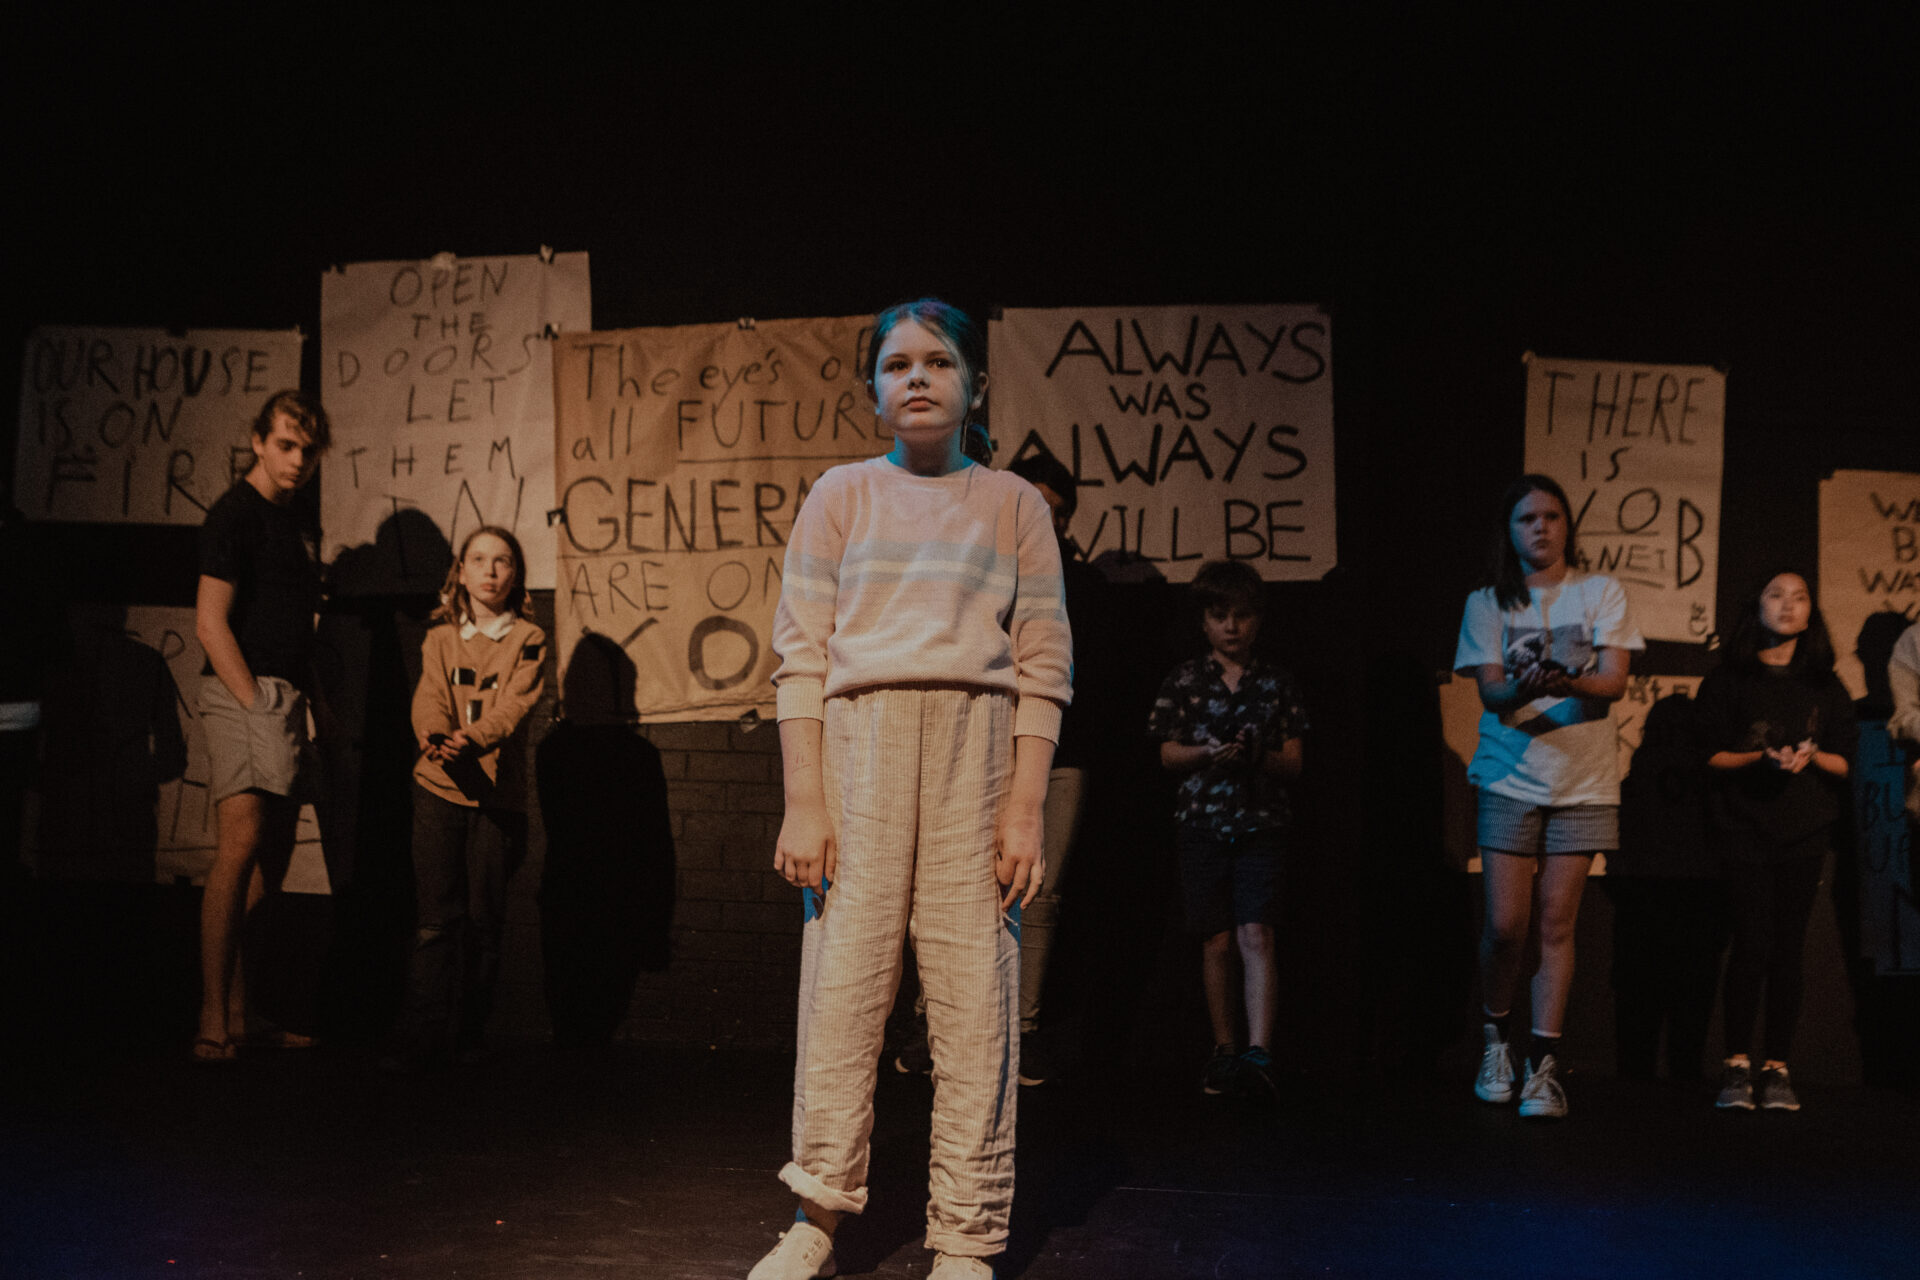 Young girl in white infront of crowd of young people and poster paper with words on them all staring at an audience under light